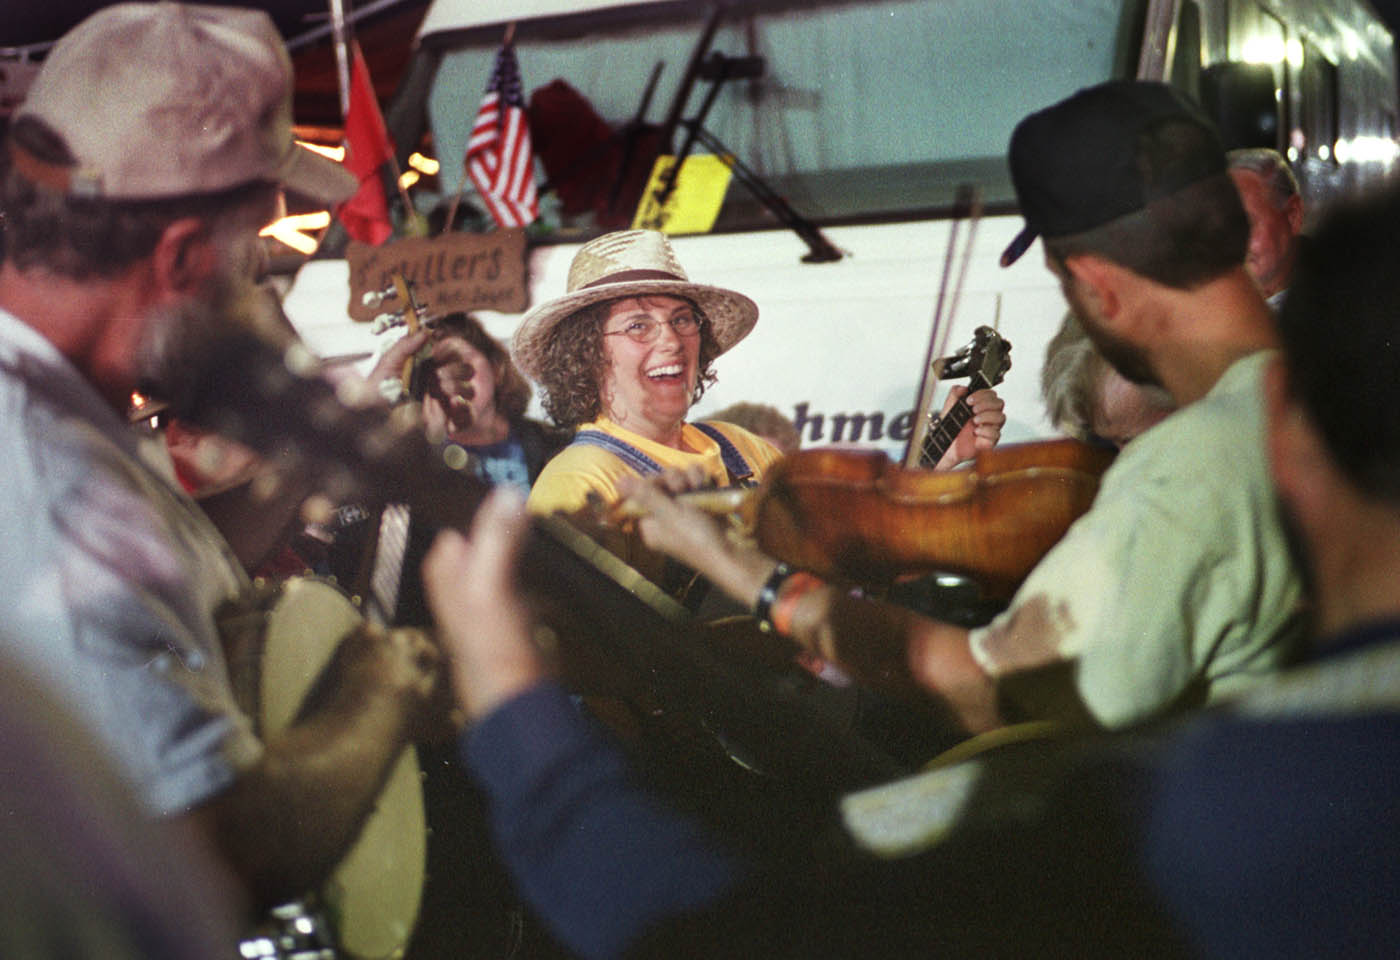 Trish Kilby, center, from Lancing, NC, was obviously having a great time picking banjo with The Blue Ridge Ramblers as they played in the campground area during the 67th Annual Old Fiddlers Convention in Galax, VA  Friday night,  August 9, 2002.    NOTE: FOR RT. 58 PROJECT.